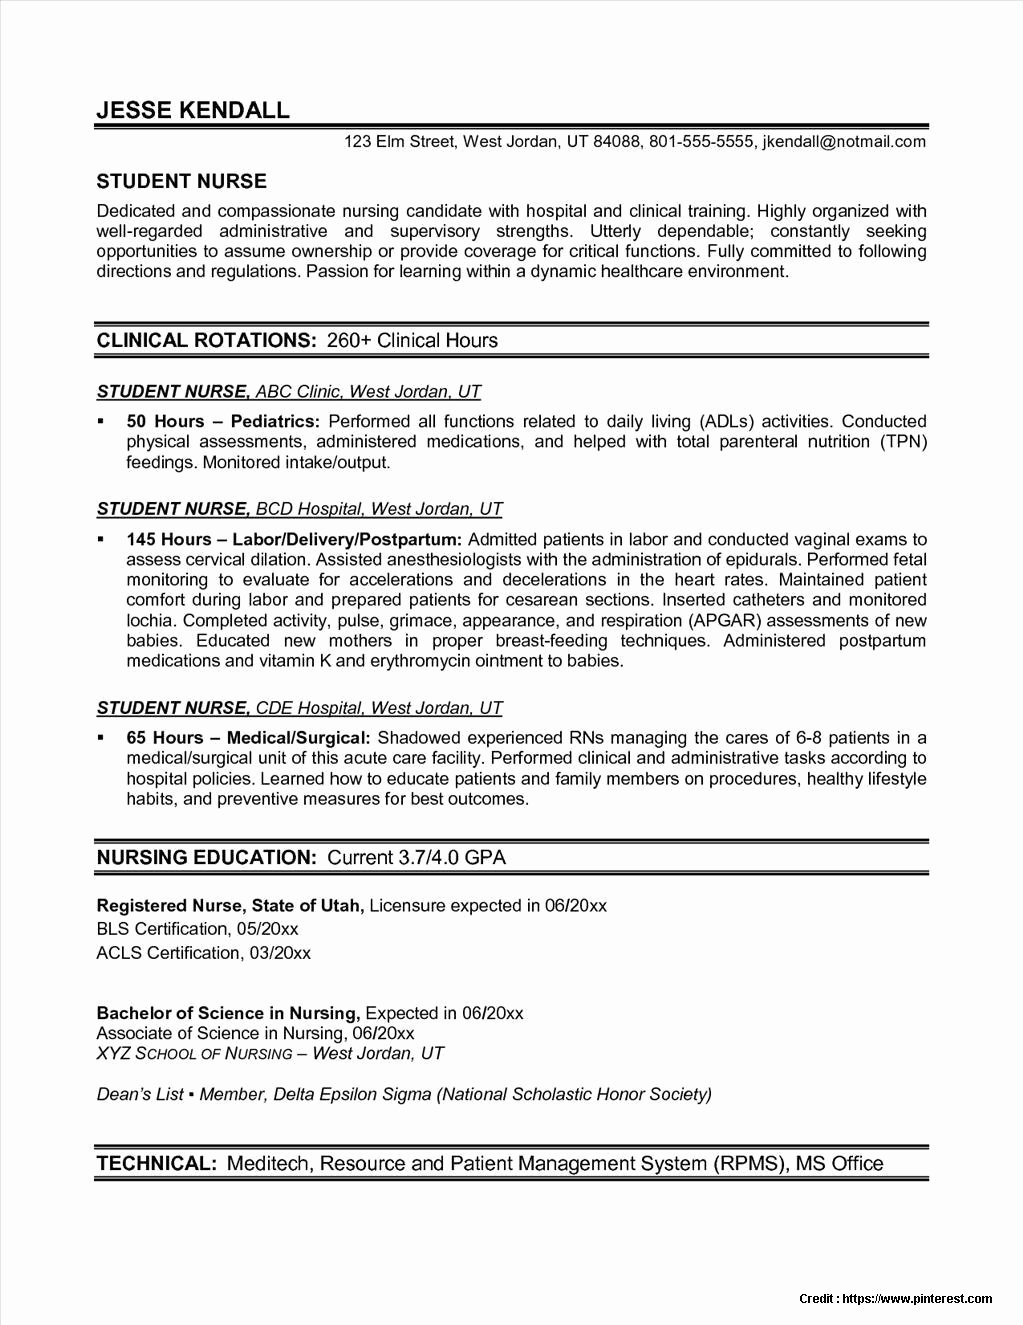 Free Rn Resume Template Fresh Free Nursing Resume Templates Download Resume Resume